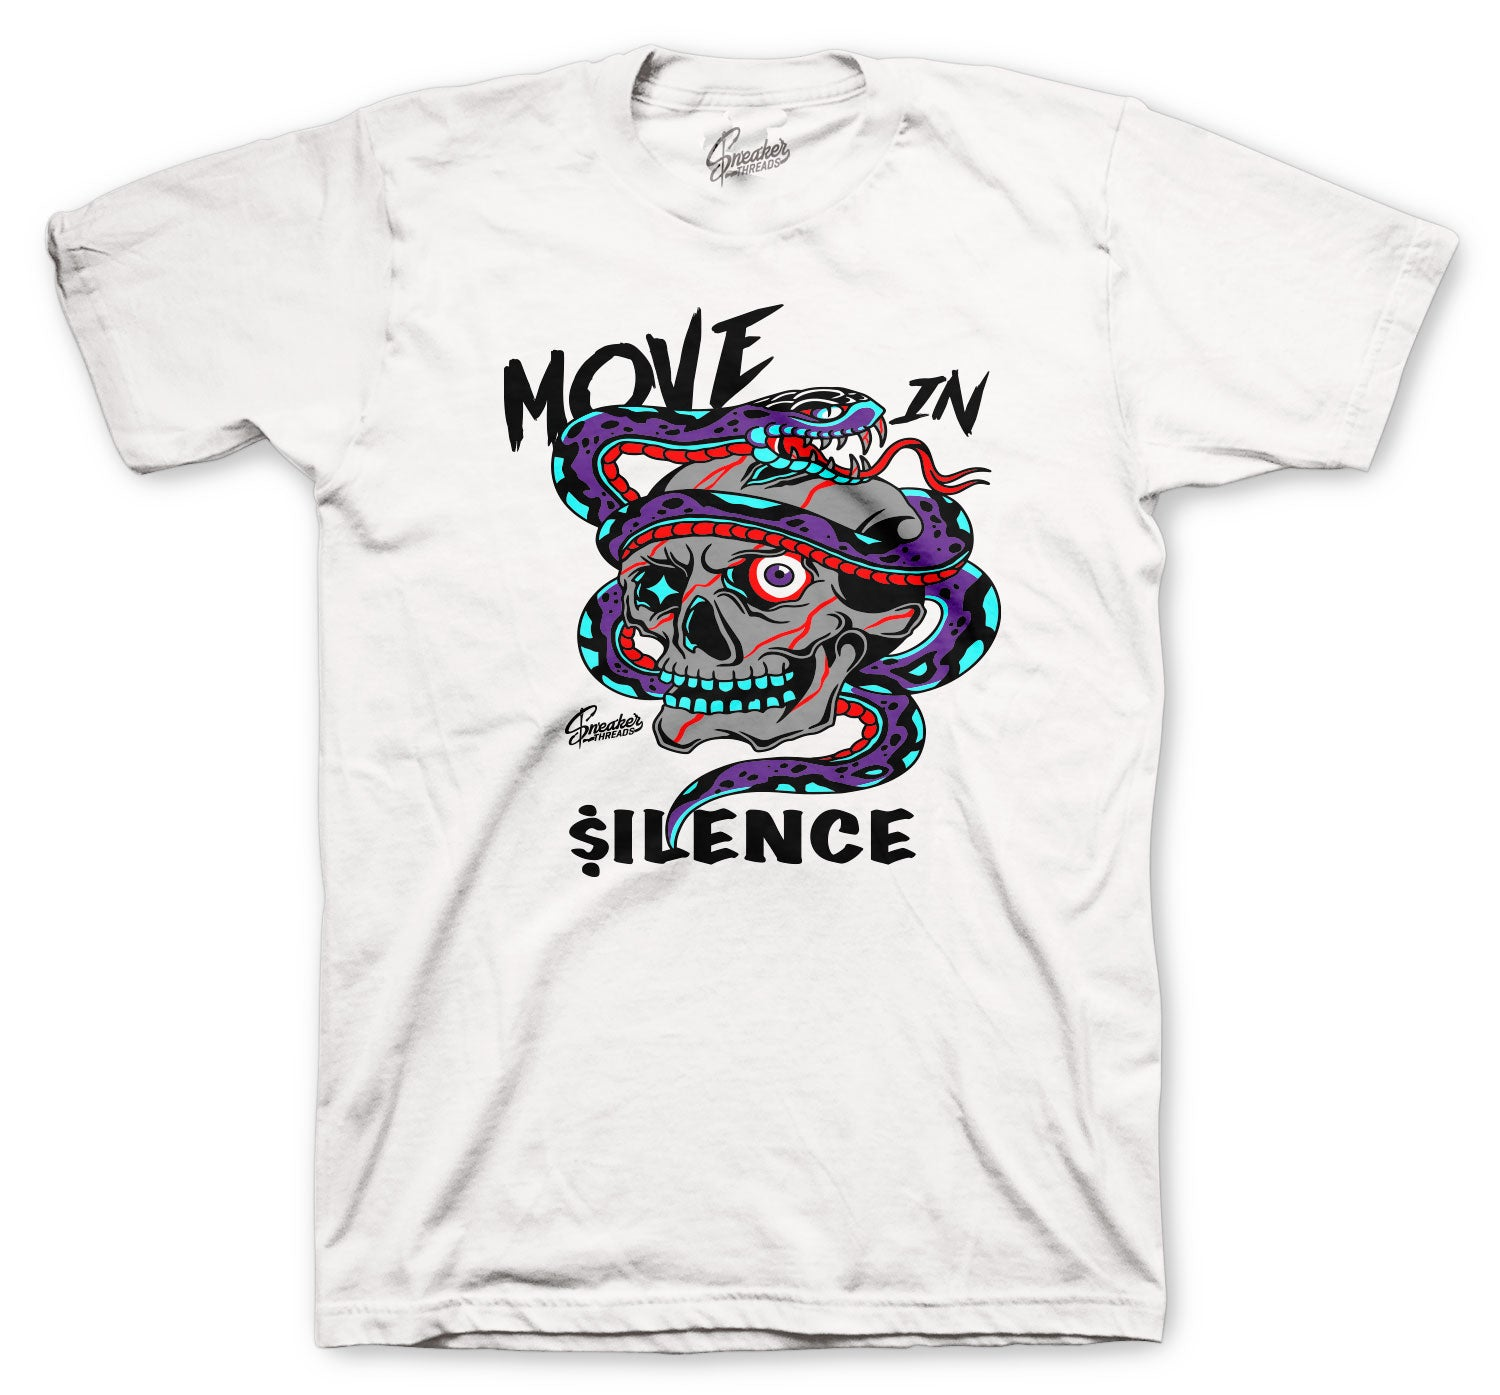 Jordan 5 Top 3 Move In Silence Shirt